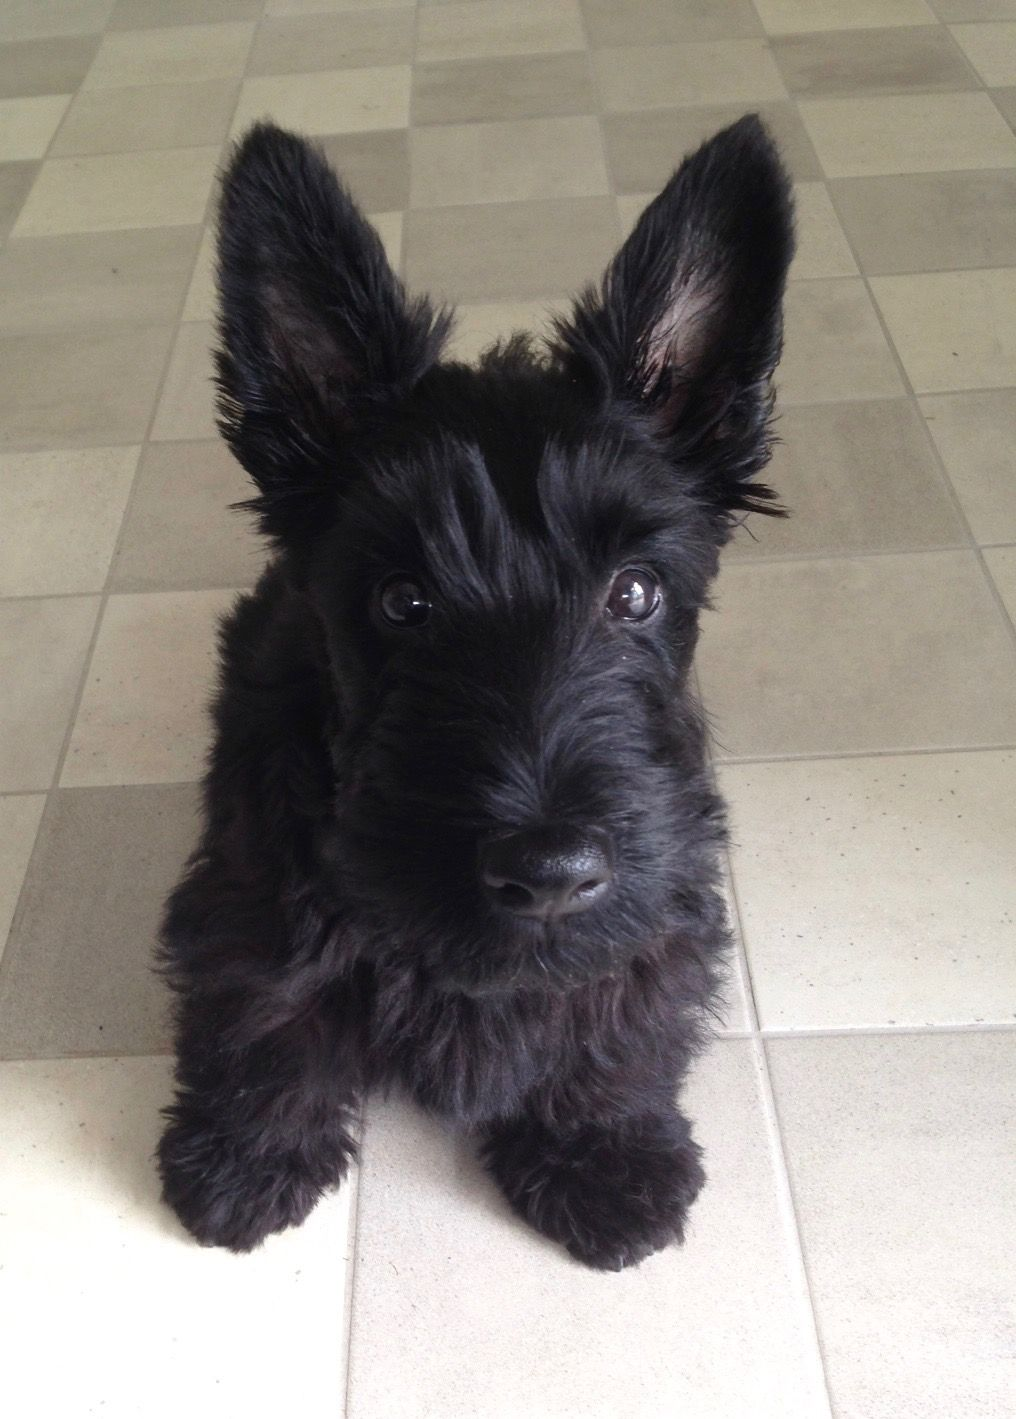 Scottie Notre Max 11 Weeks Old Scottie Puppies Scottish Terrier Puppy Westie Puppies